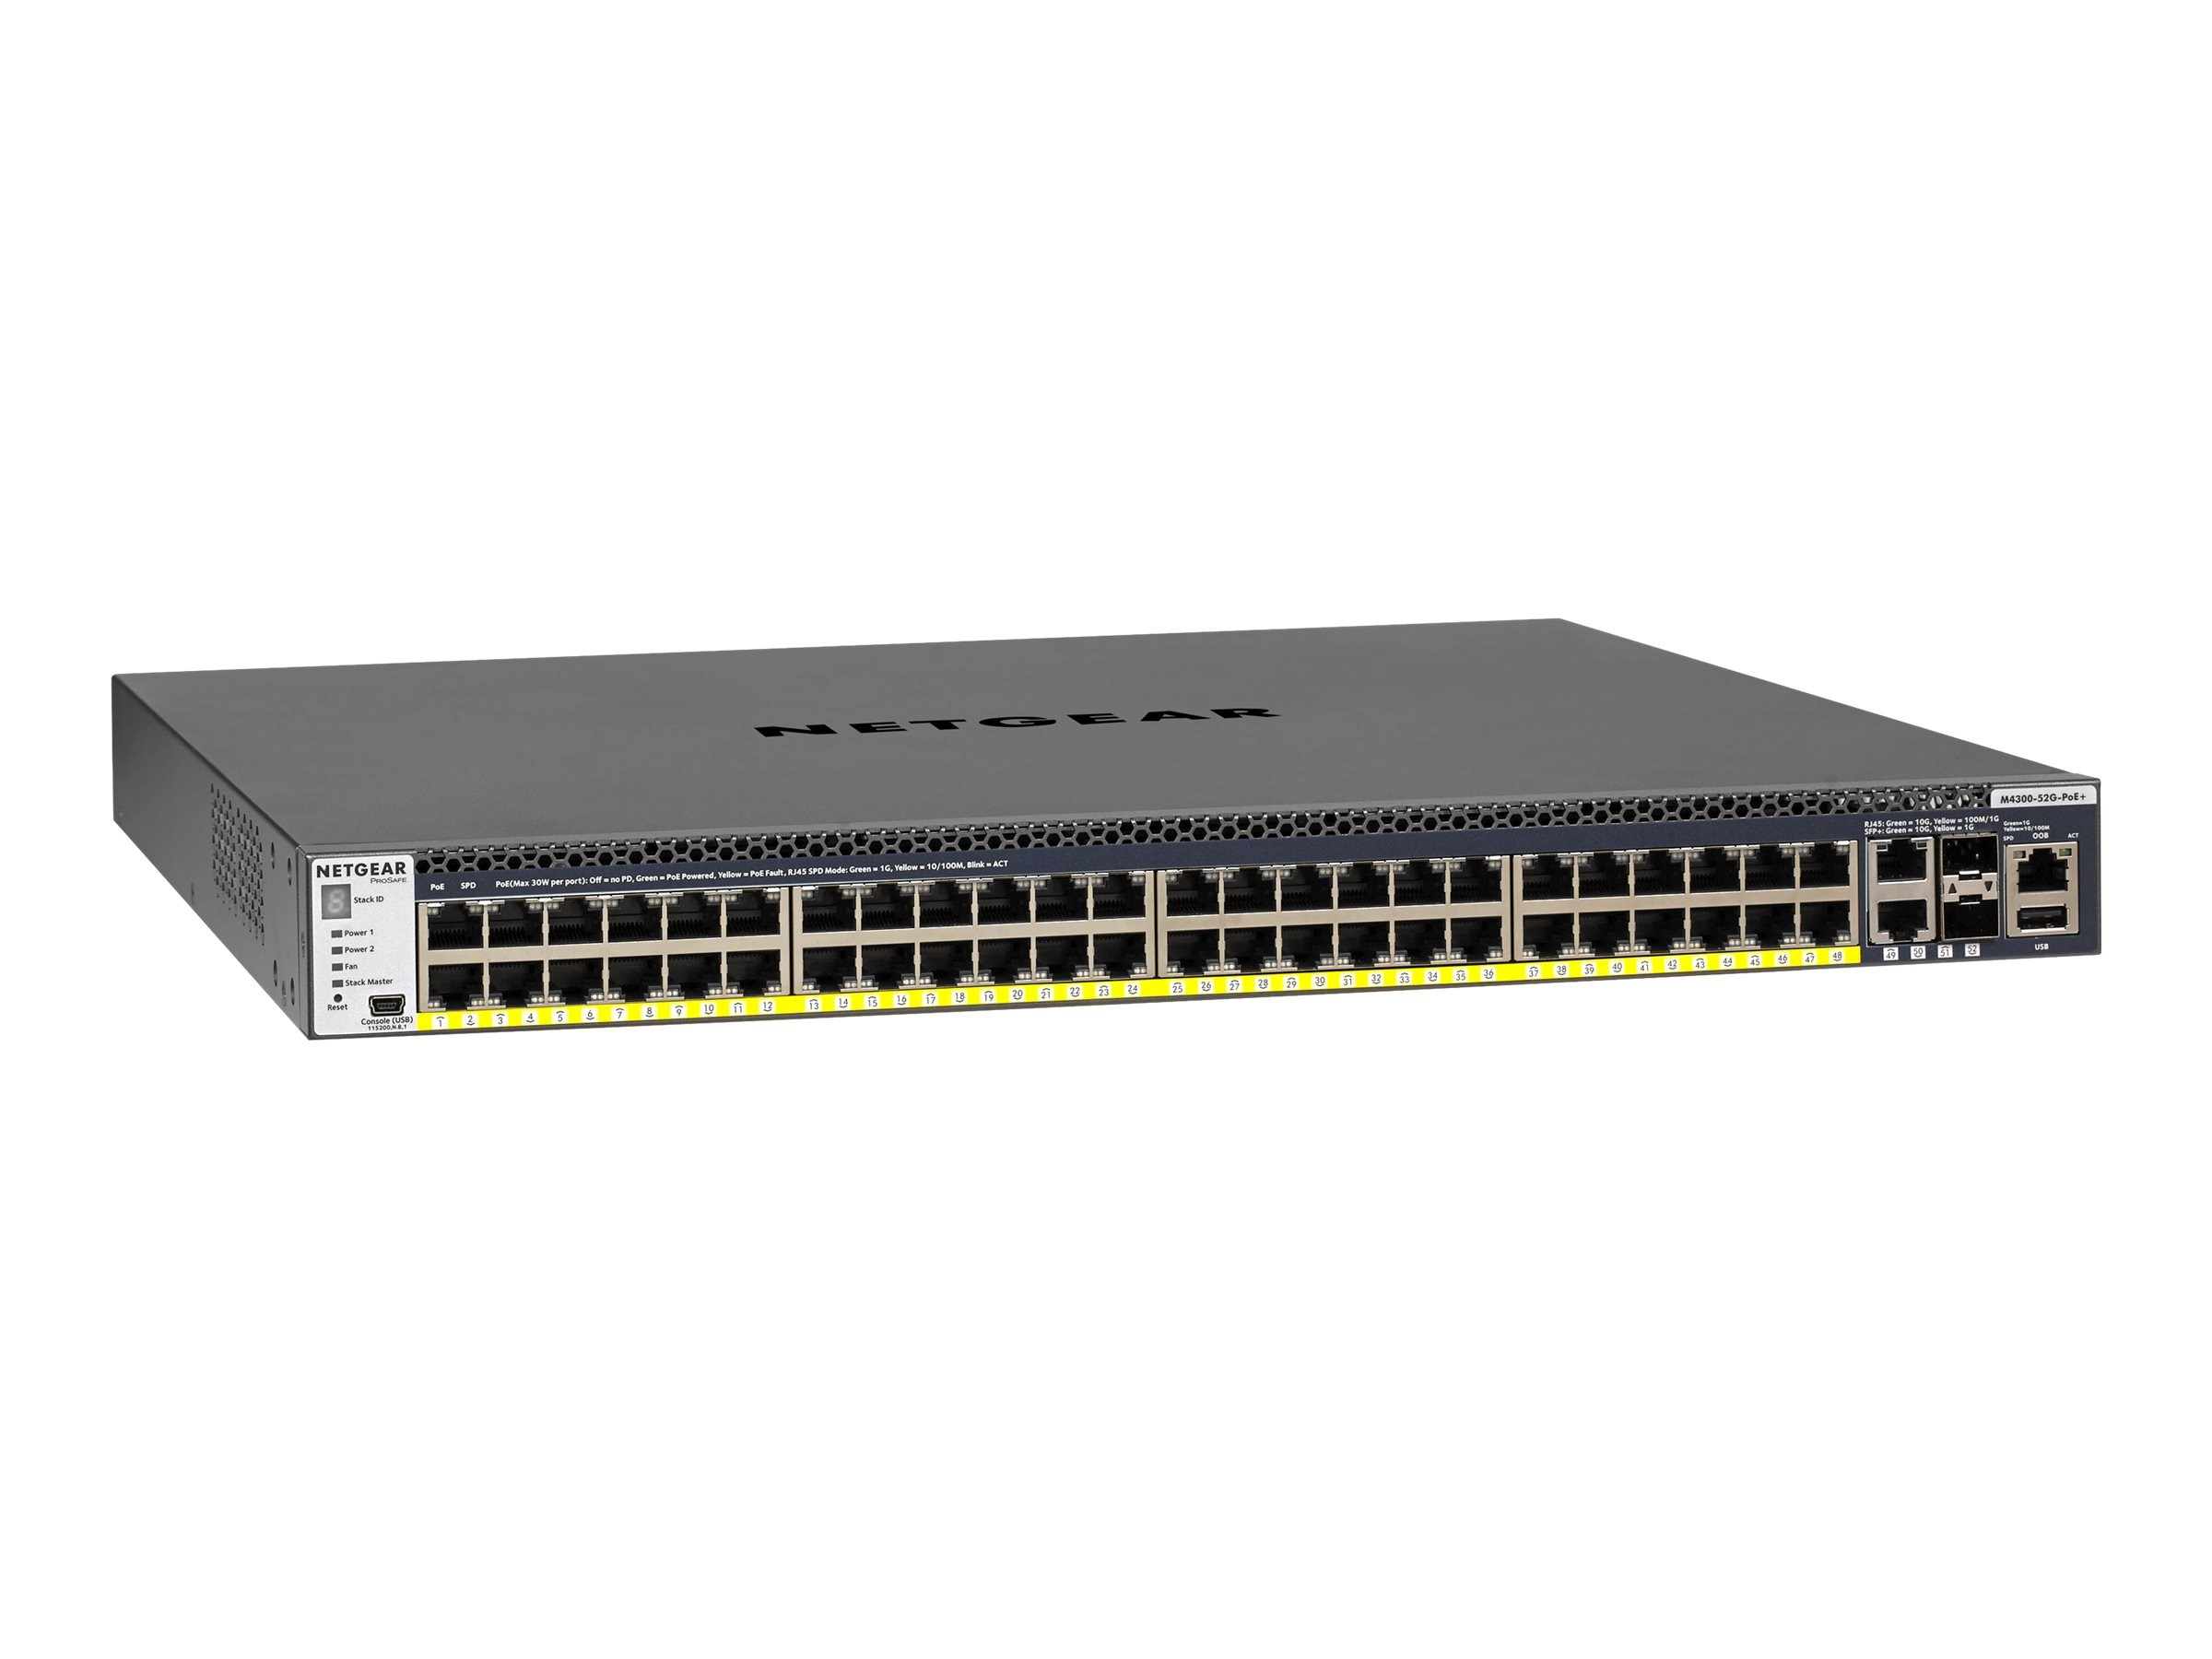 Netgear M4300-52G-PoE+ 48-Port Gb PoE+ Managed Switch